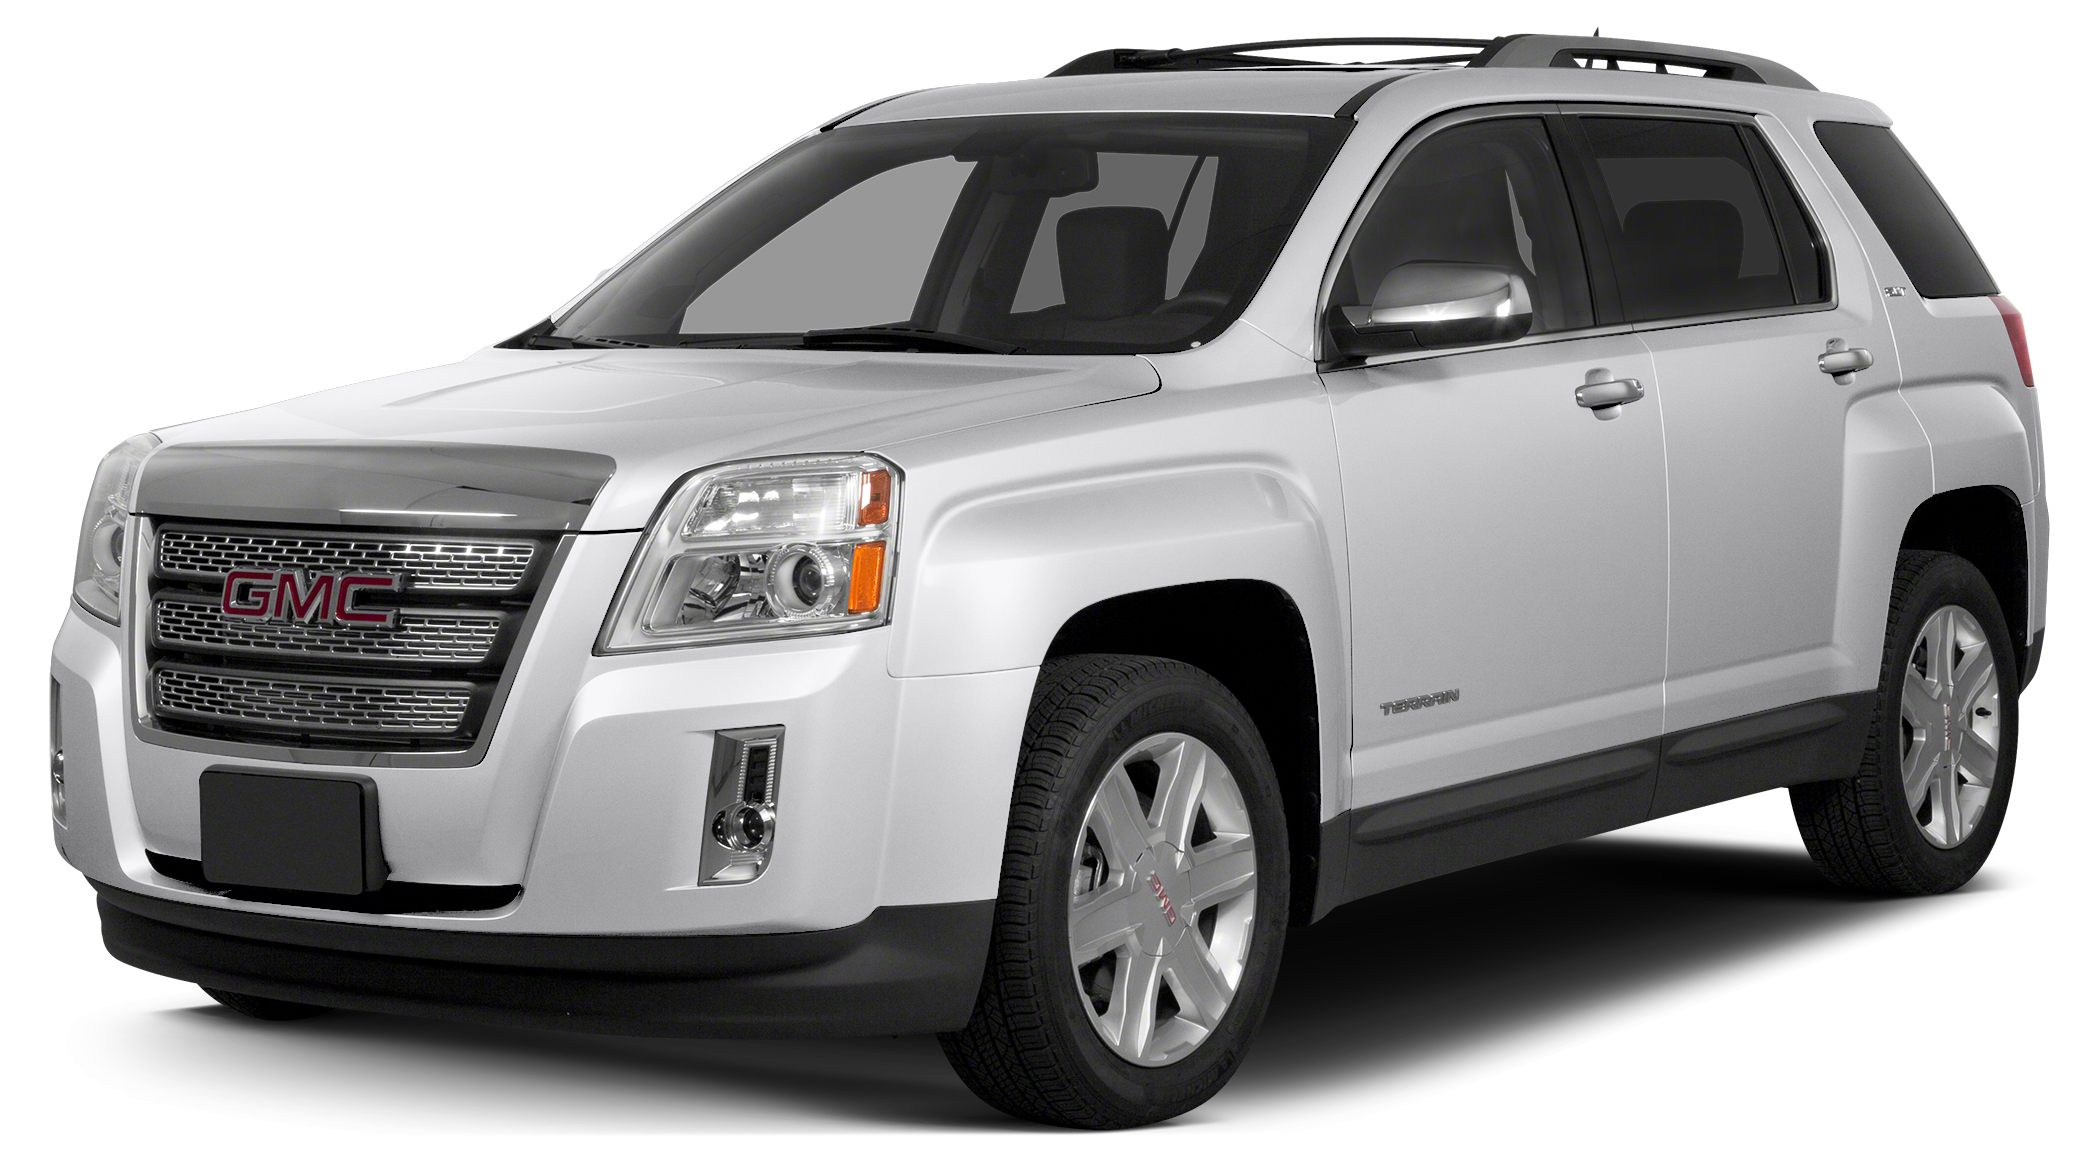 2015 GMC Terrain SLE-1 CARFAX 1-Owner FUEL EFFICIENT 32 MPG Hwy22 MPG City Aluminum Wheels Bac